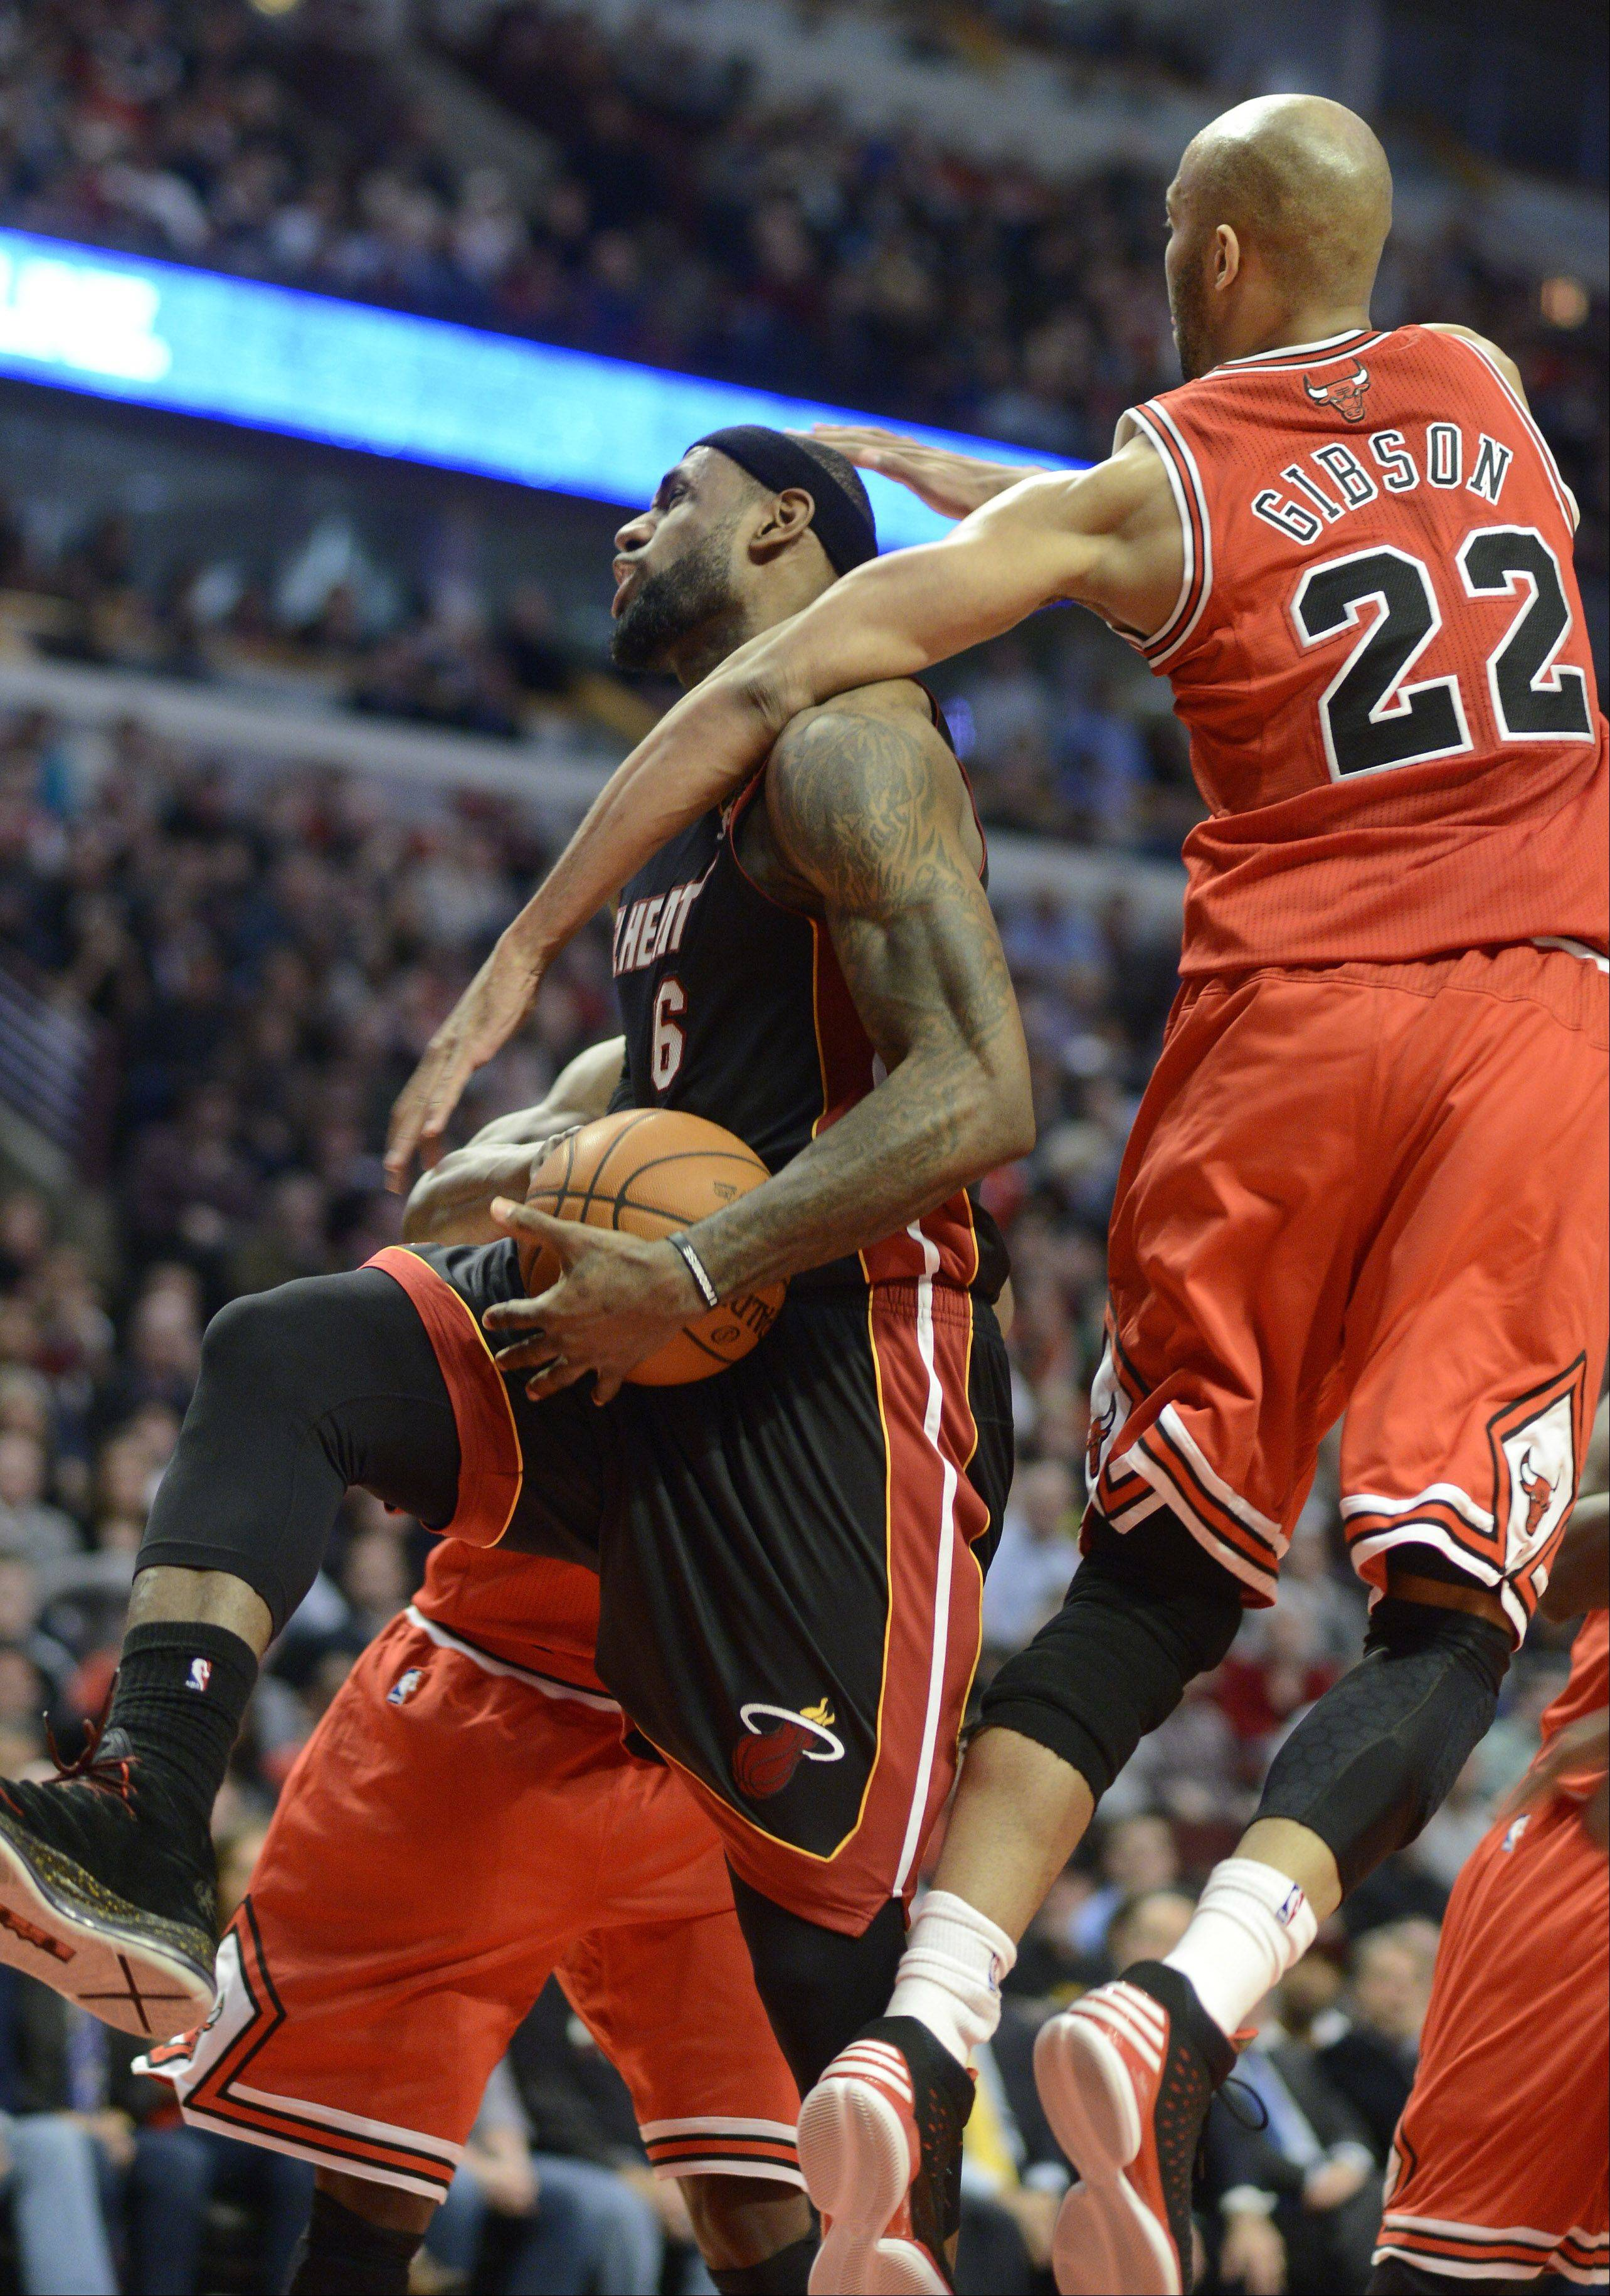 The Heat's LeBron James gets fouled by Taj Gibson of the Bulls. It was reviewed and determined not to be a flagrant foul.